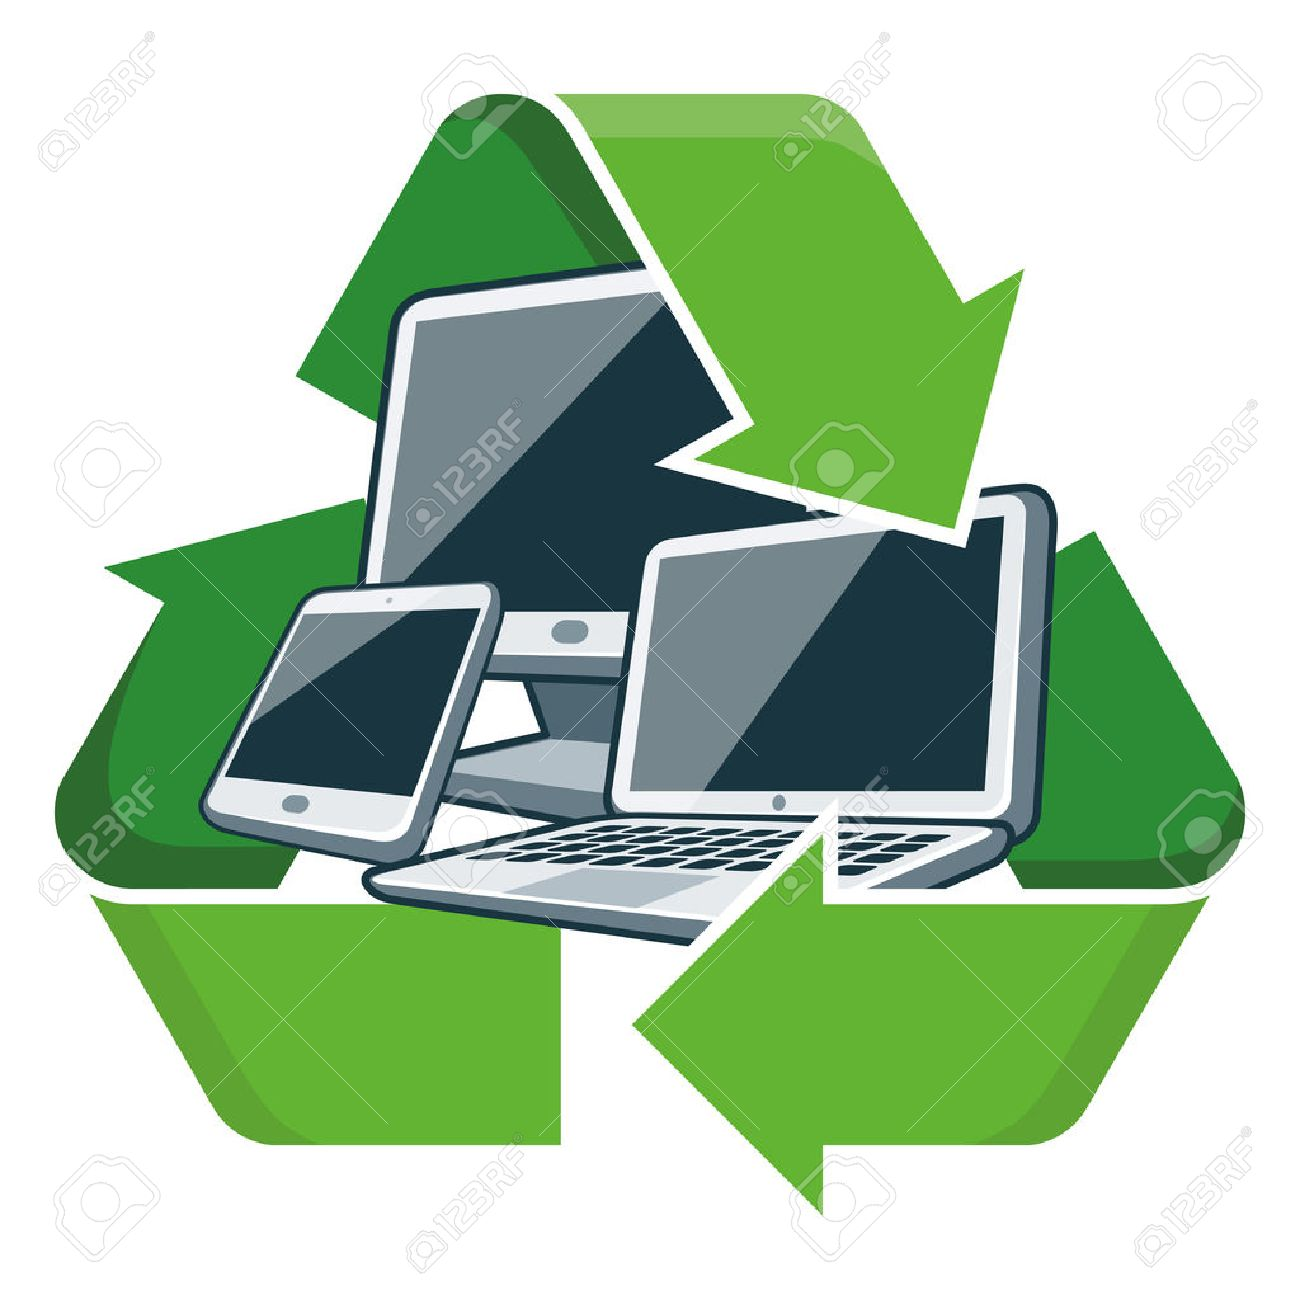 Electronic Devices With Recycling Symbol Isolated Vector ...